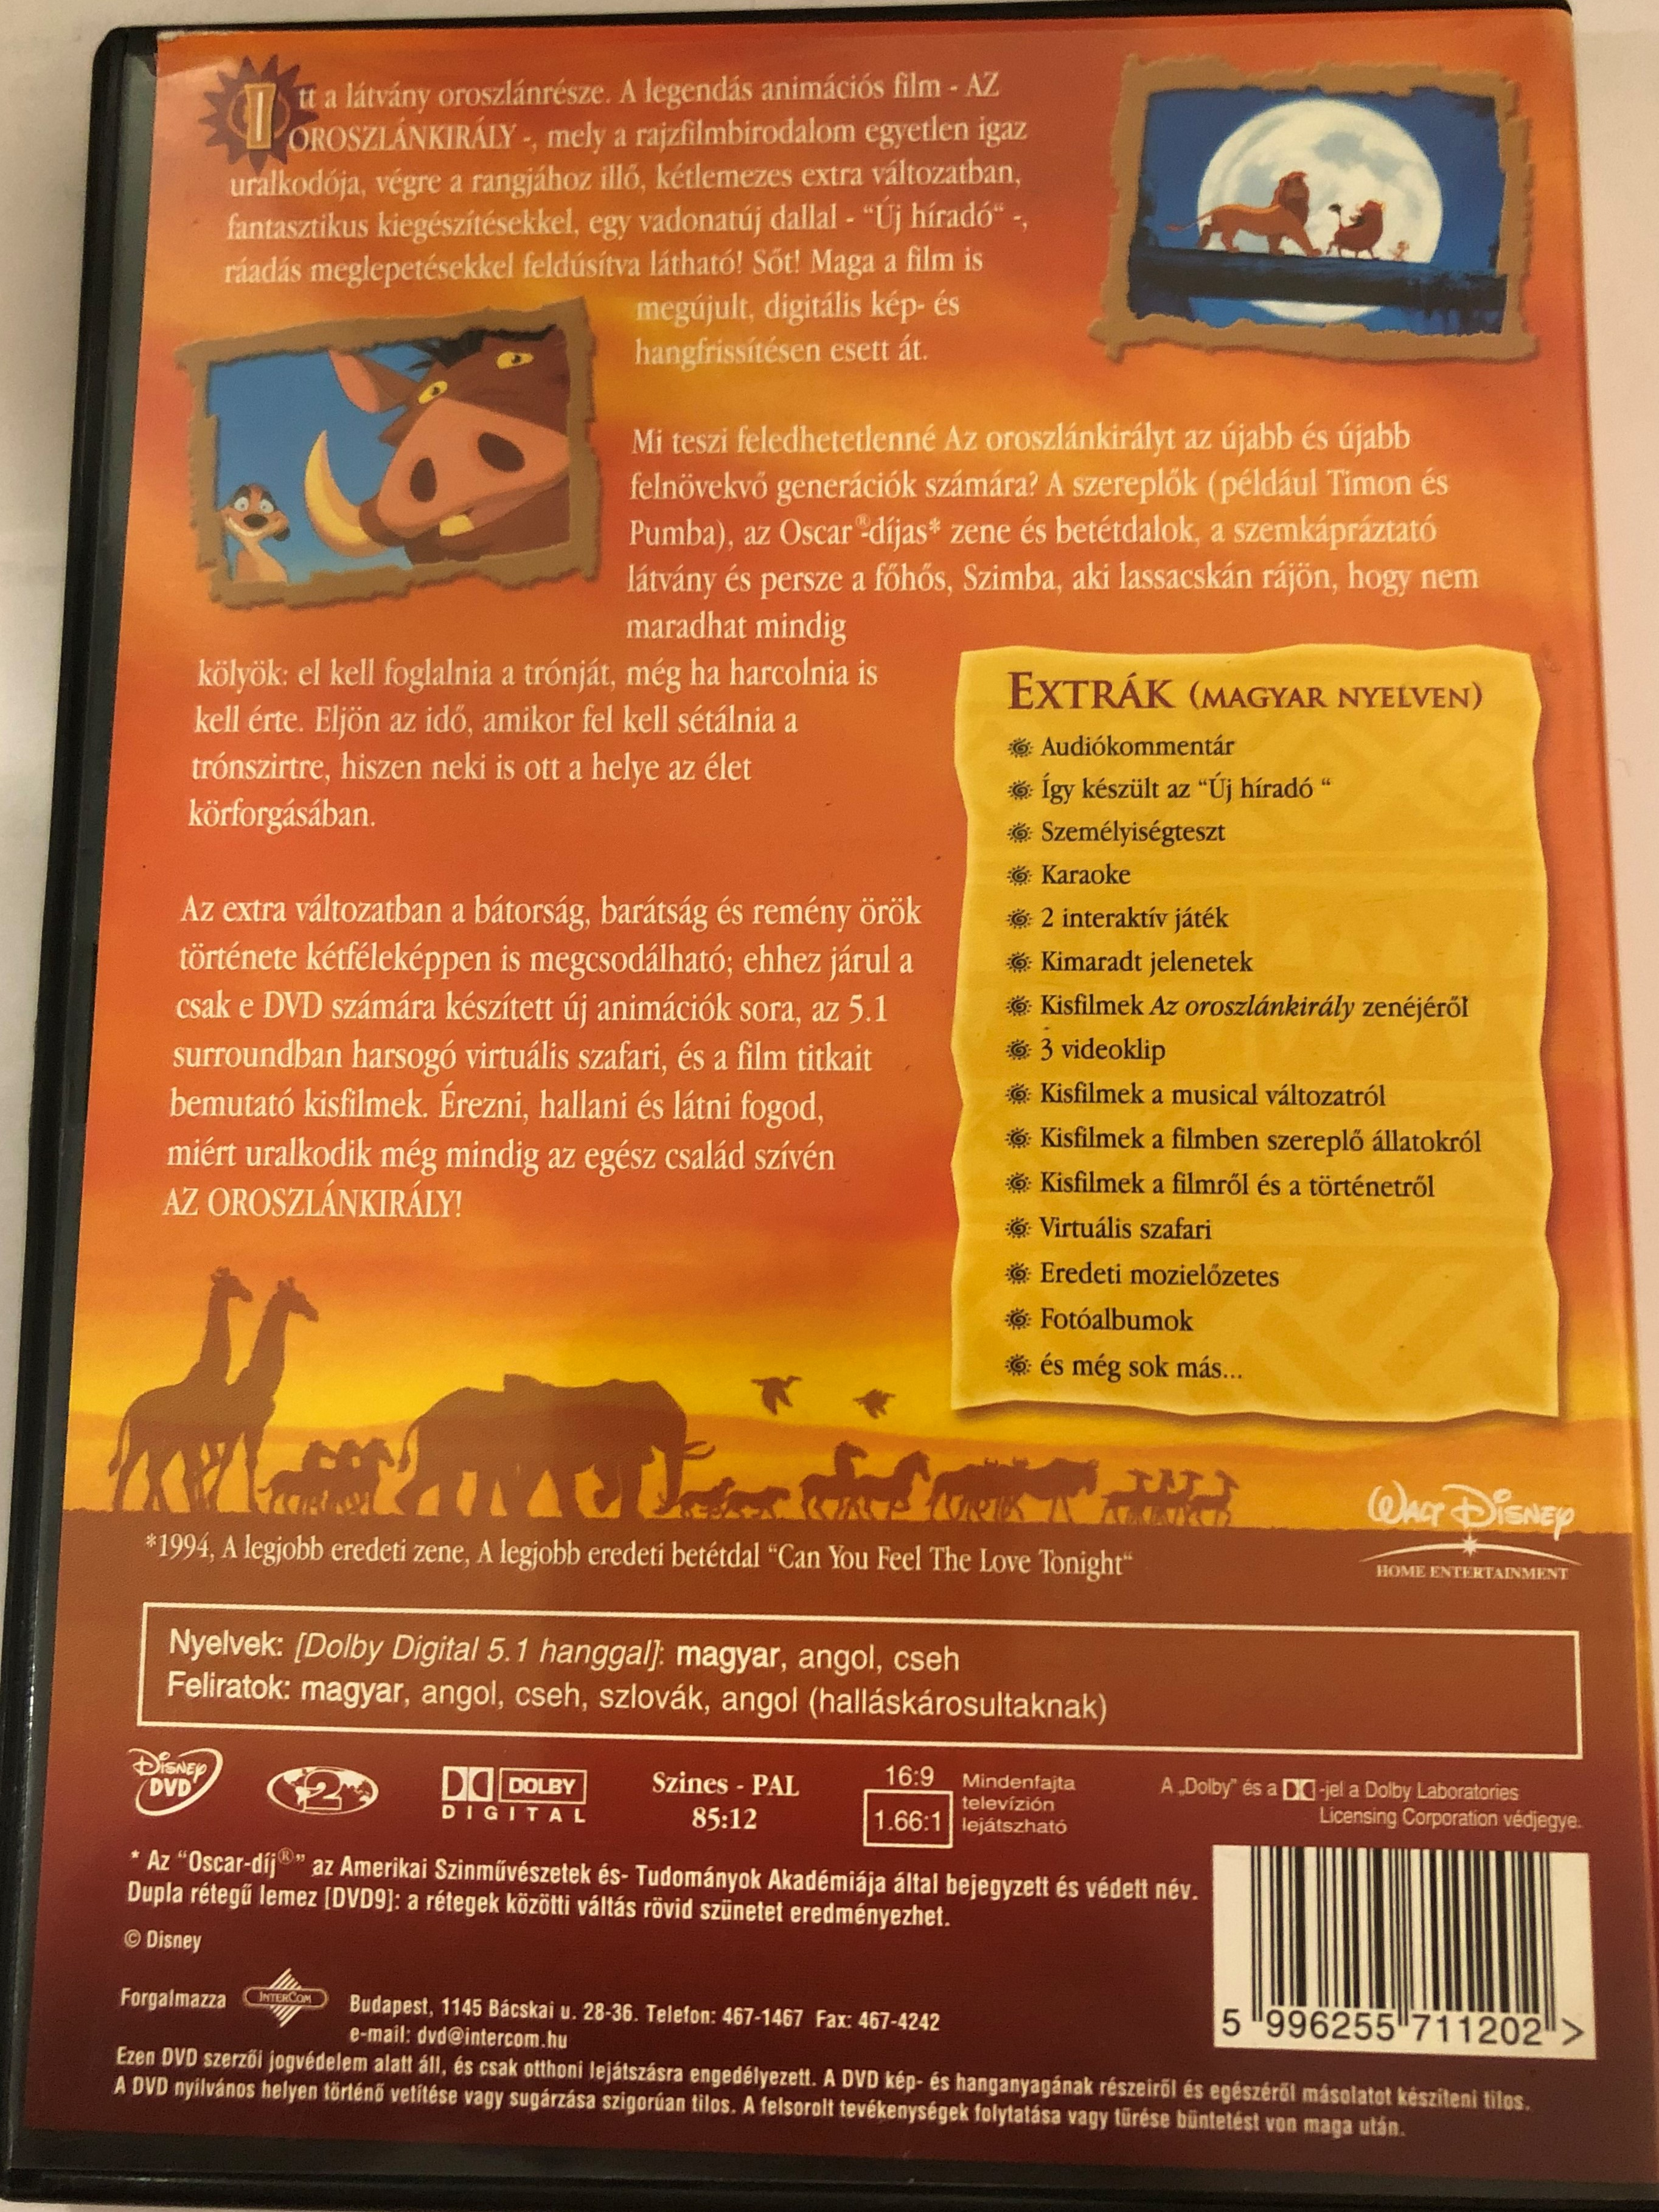 the-lion-king-hungarian-special-edition-dvd-1994-az-oroszl-nkir-ly-directed-by-roger-allers-rob-minkoff-2.jpg